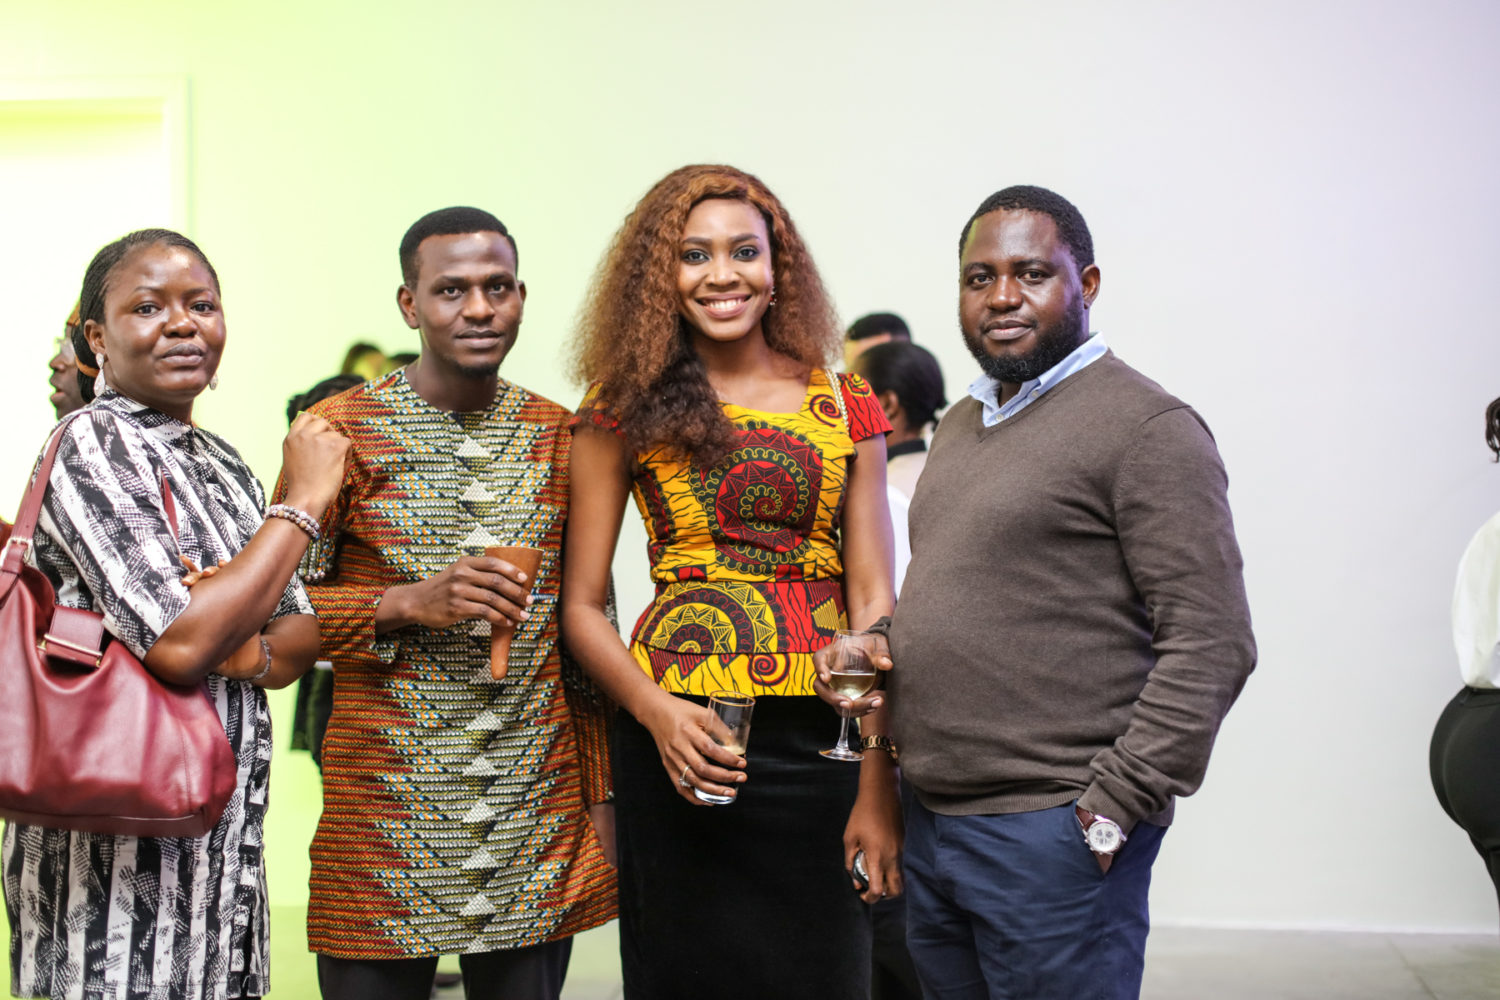 Inside The Vlisco & Co 'Inspired by the Igbo' Event